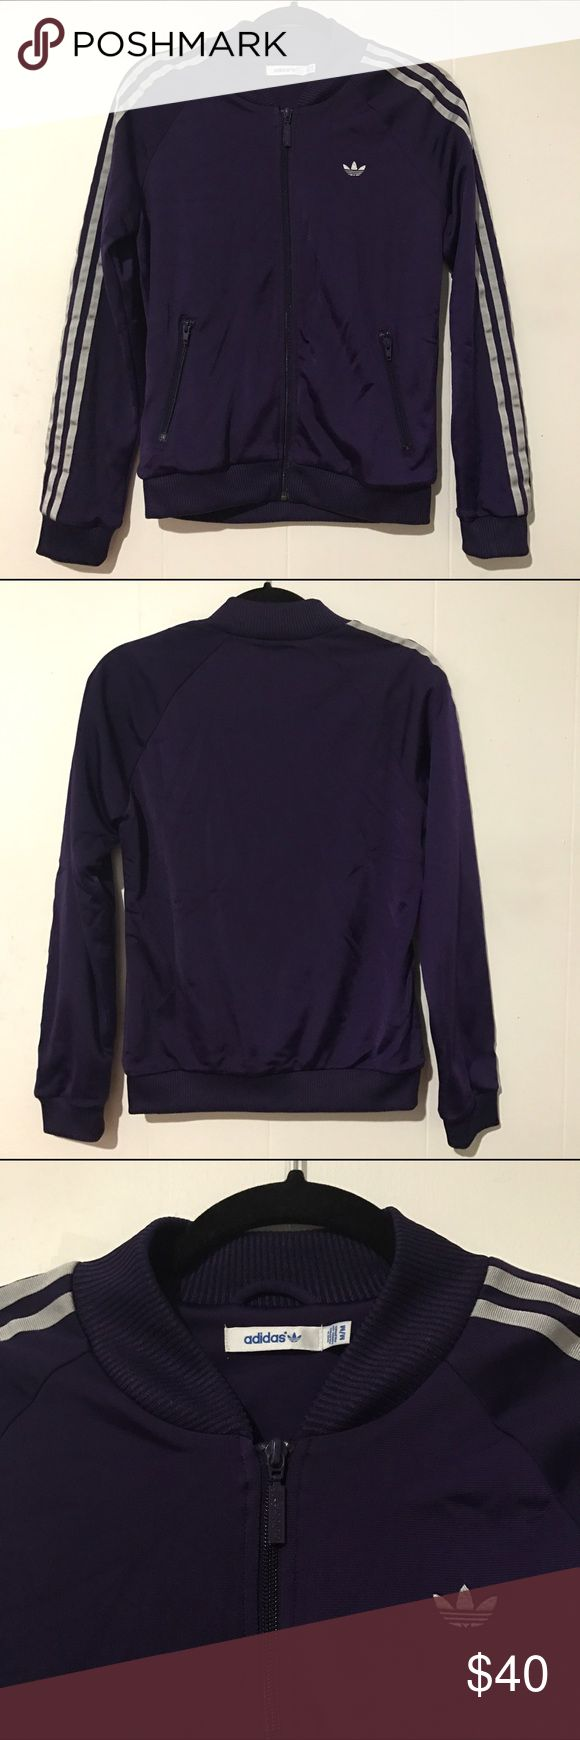 Adidas womens zip up jacket 🎈PRICE DROP🎈 Adidas womens zip up jacket with 2 pockets that have zippers. NWOT. Purple color. Size is Medium. Very comfortable. No stains. No flaws. *feel free to make a reasonable offer ;) Adidas Jackets & Coats